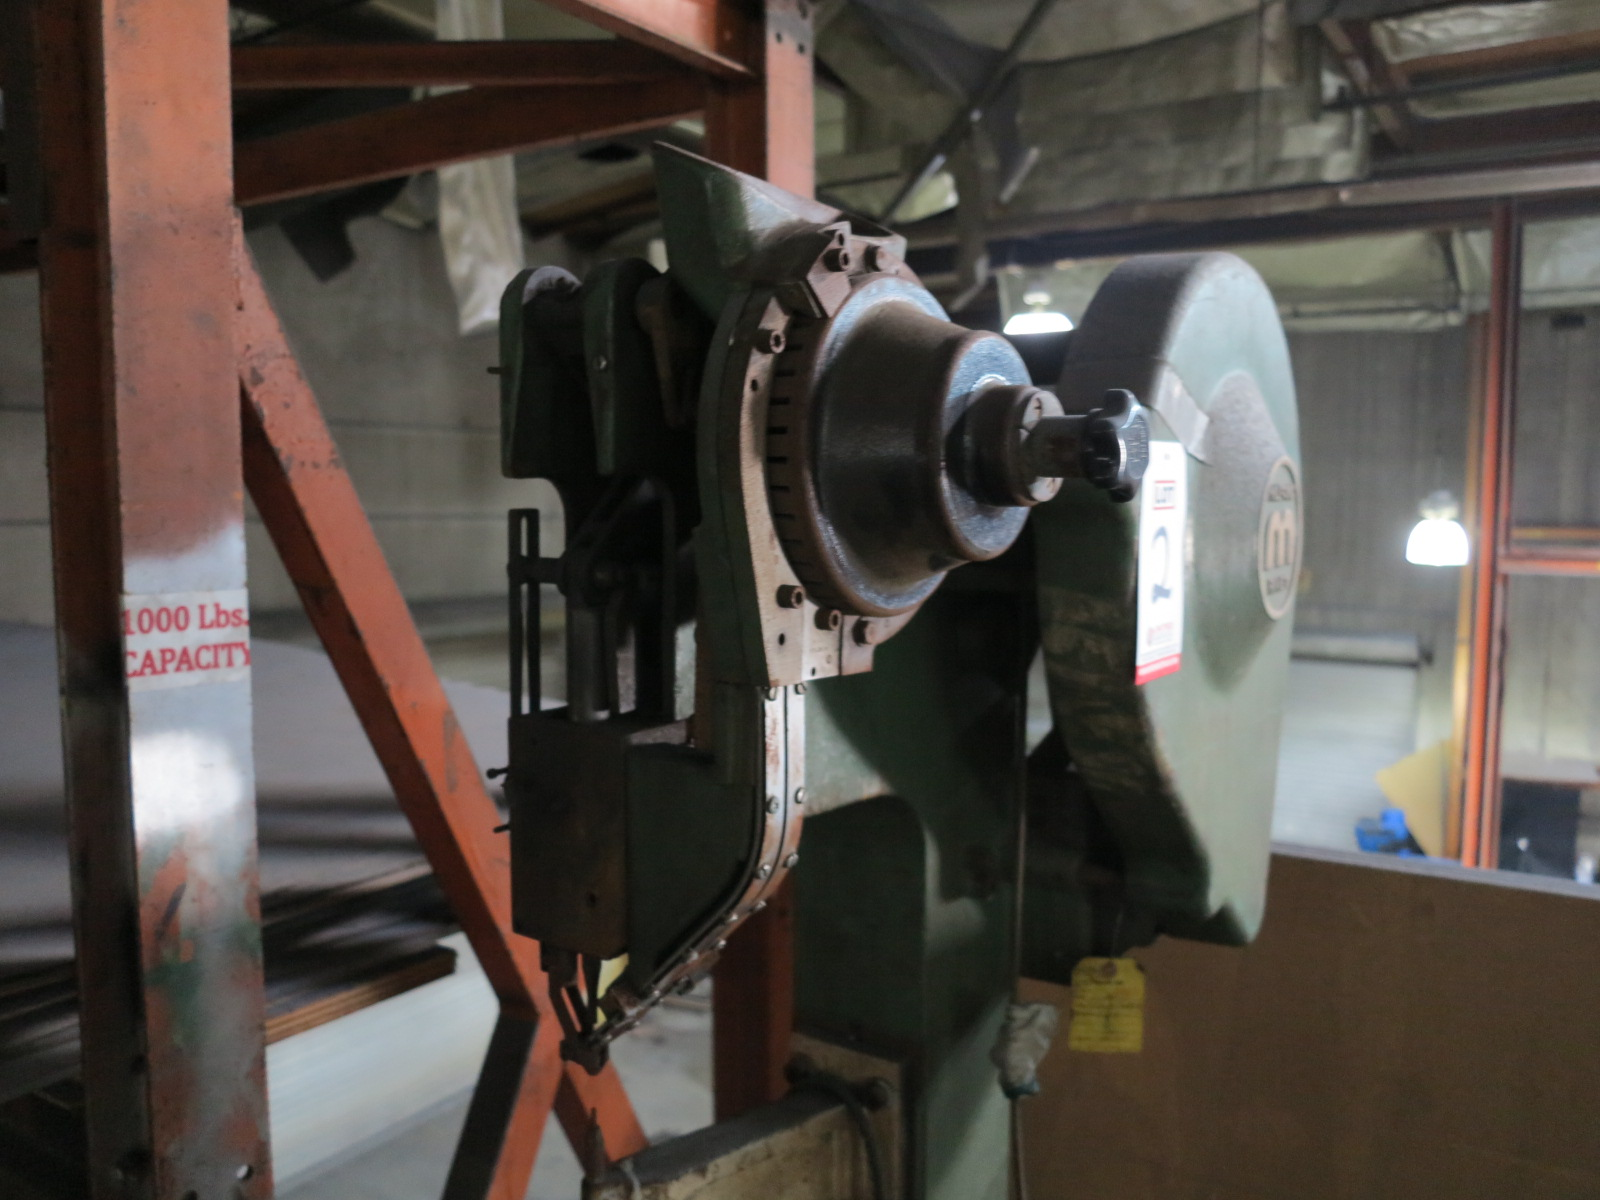 MILFORD RIVET MACHINE, MODEL 256REV3, S/N 1427, OUT OF SERVICE - Image 2 of 2